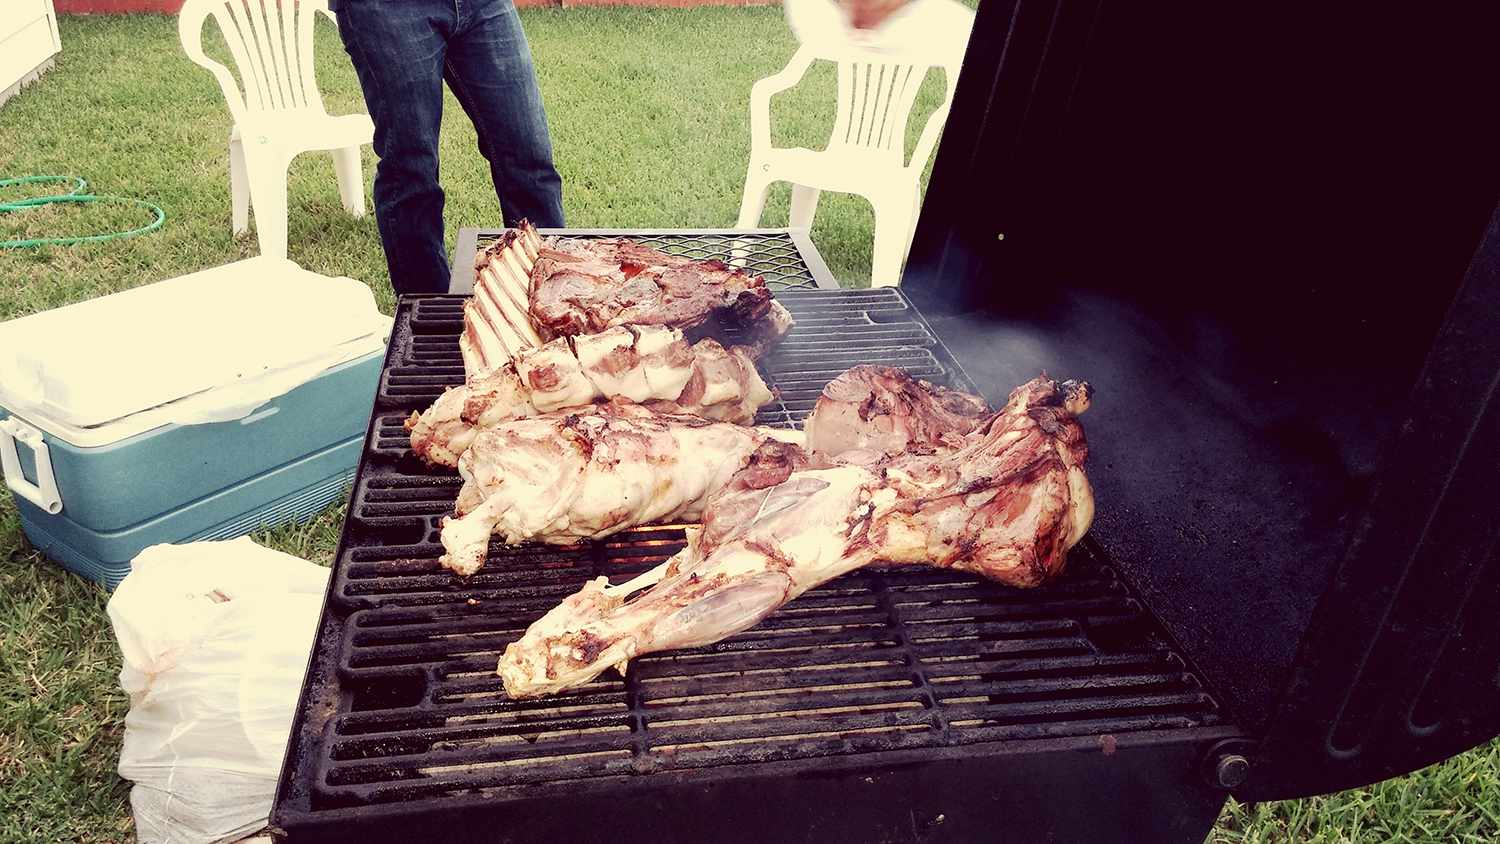 Goat on the BBQ